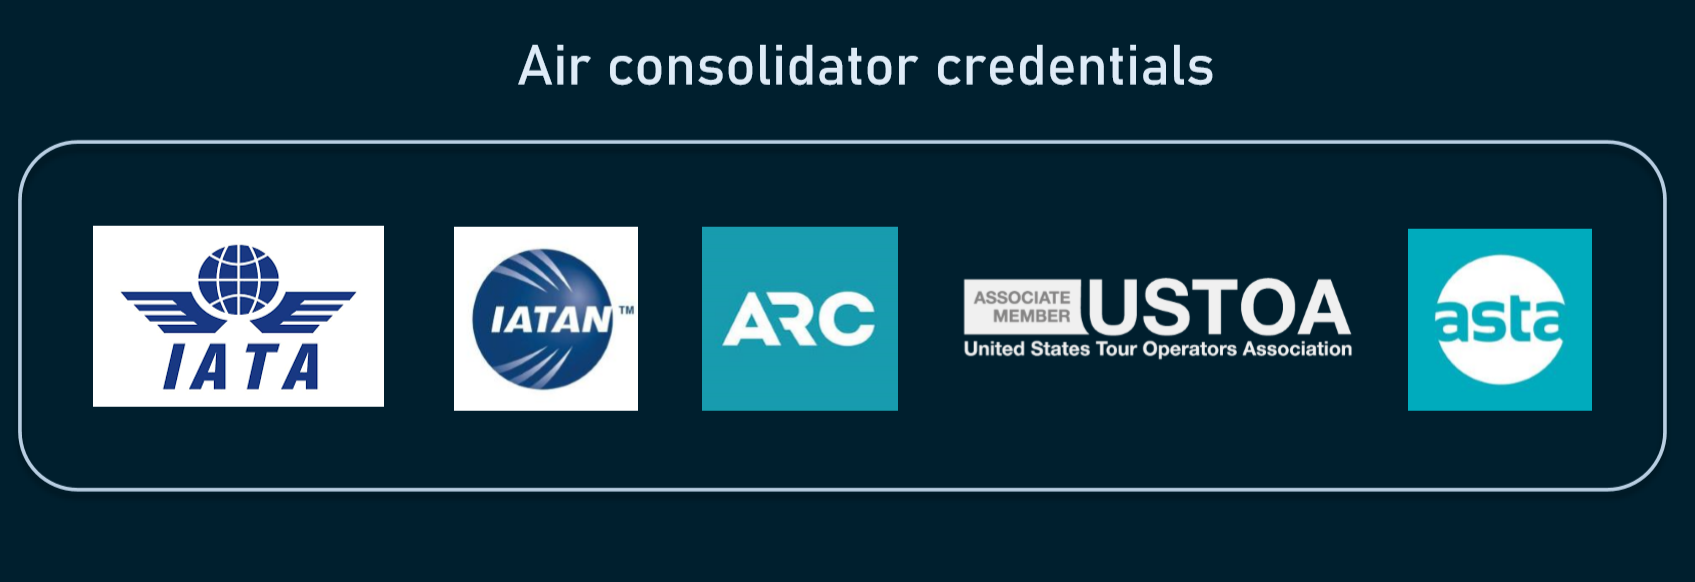 Certifications proving the credibility of a flight consolidator